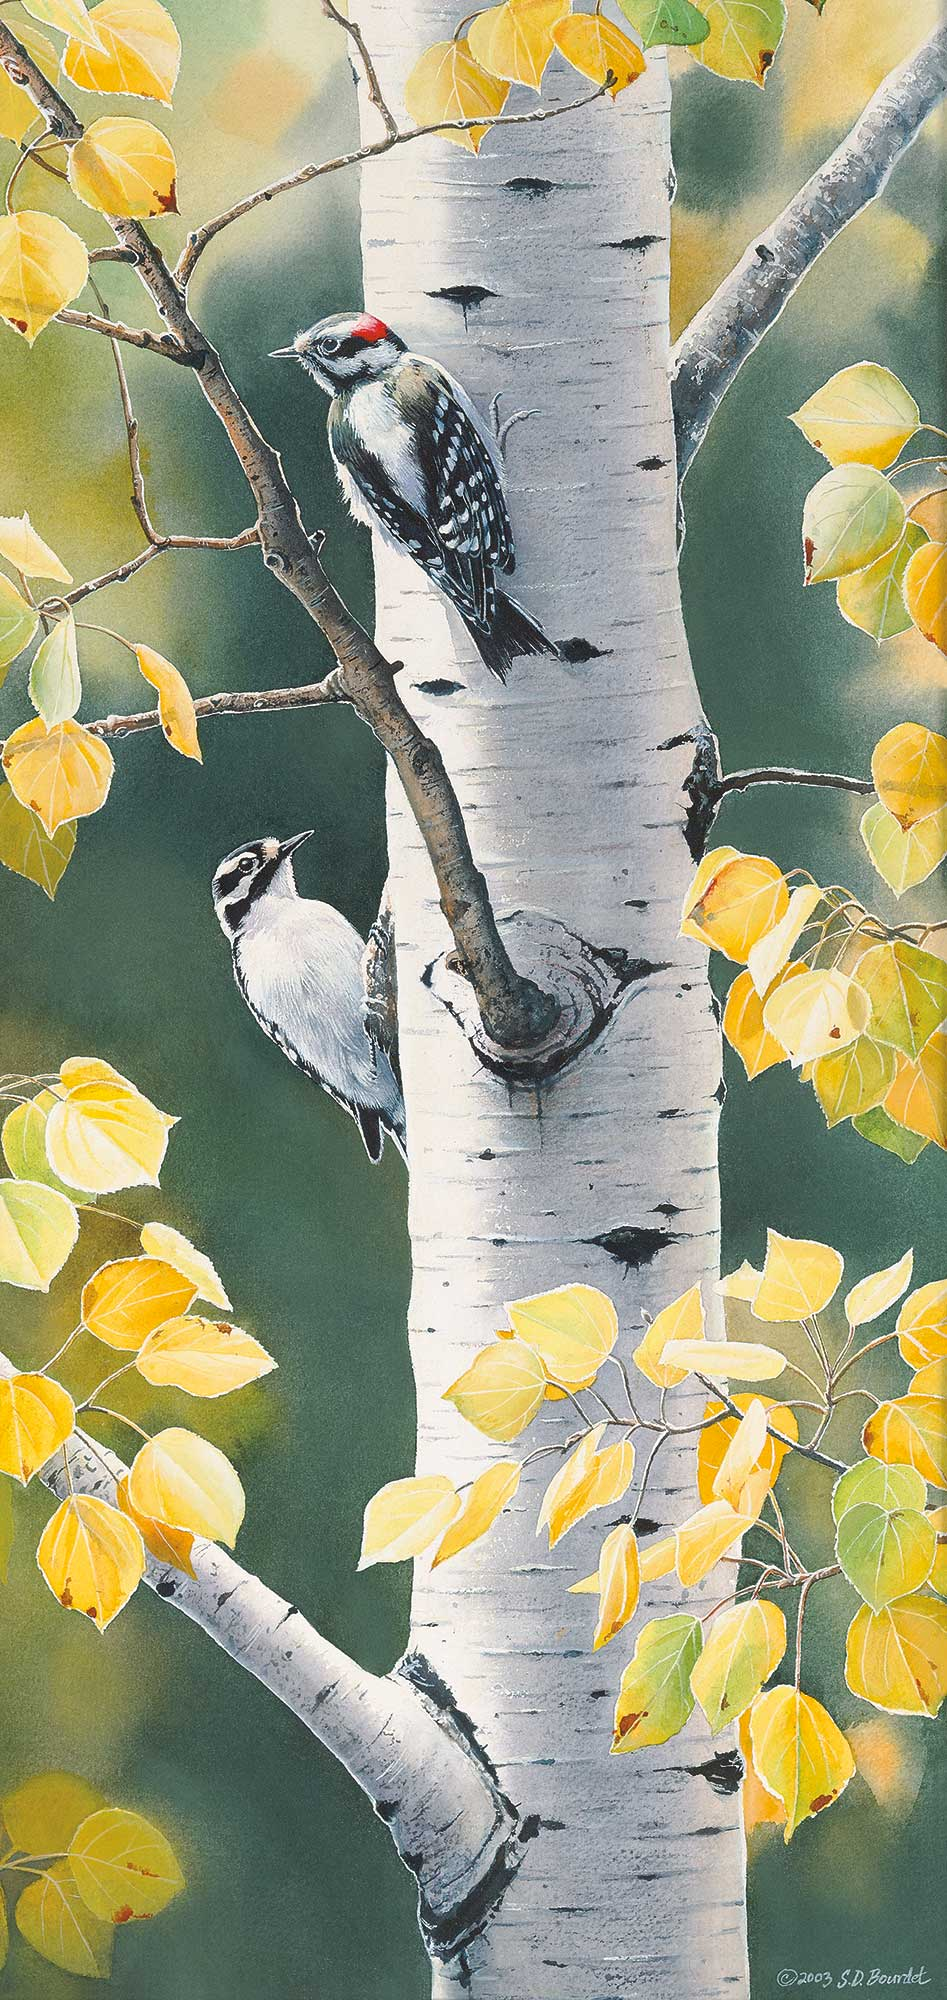 1085075131:&nbsp;<i>Autumn Afternoon&mdash;Woodpeckers;&nbsp;</i> Limited Remarque Print